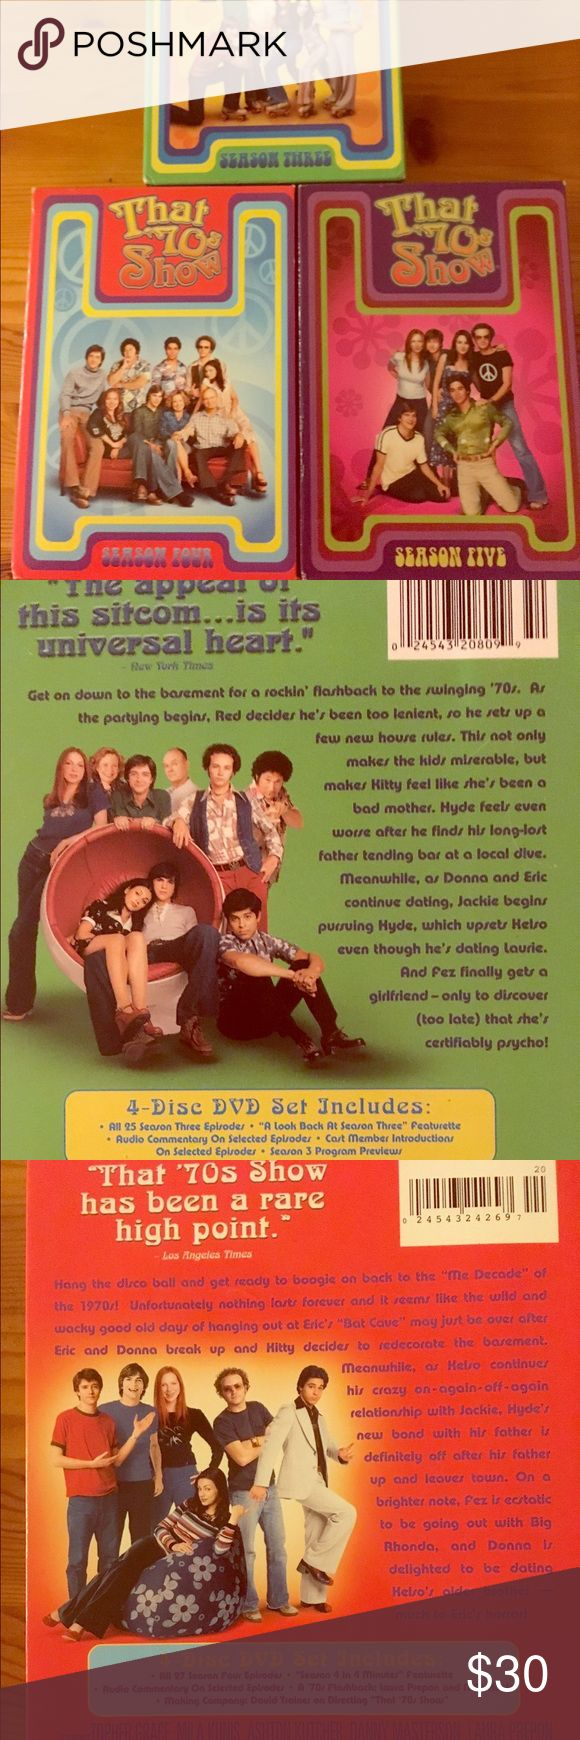 That 70's Show Seasons 3-5 Bundle! Great condition. Hilarious show! Ashton Kutcher and Mila Kunis met filming this show! Other